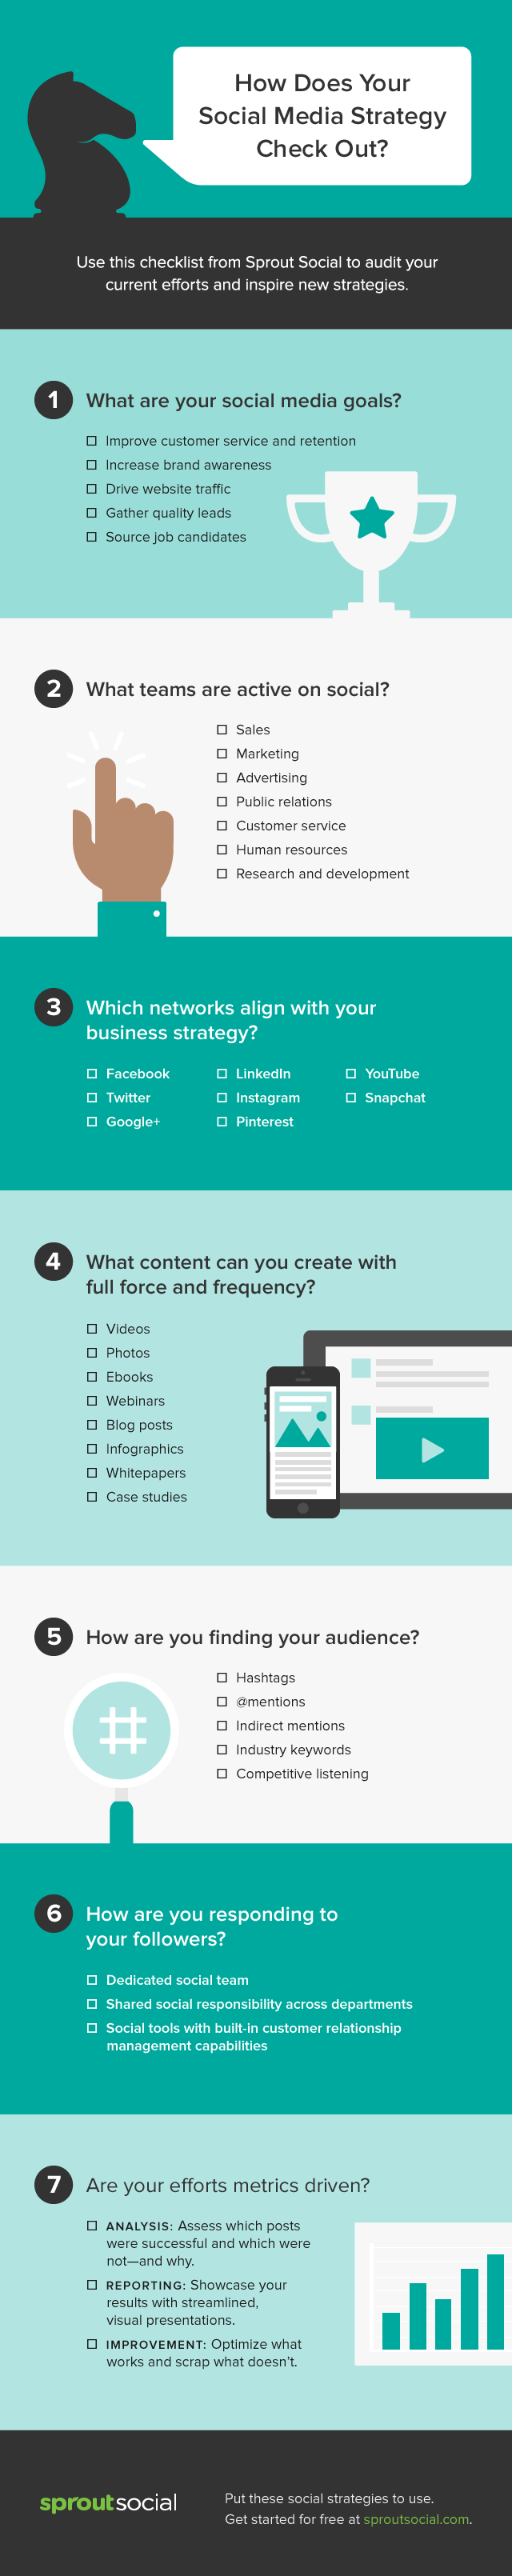 the-social-media-marketing-checklist_54f7586463dbc